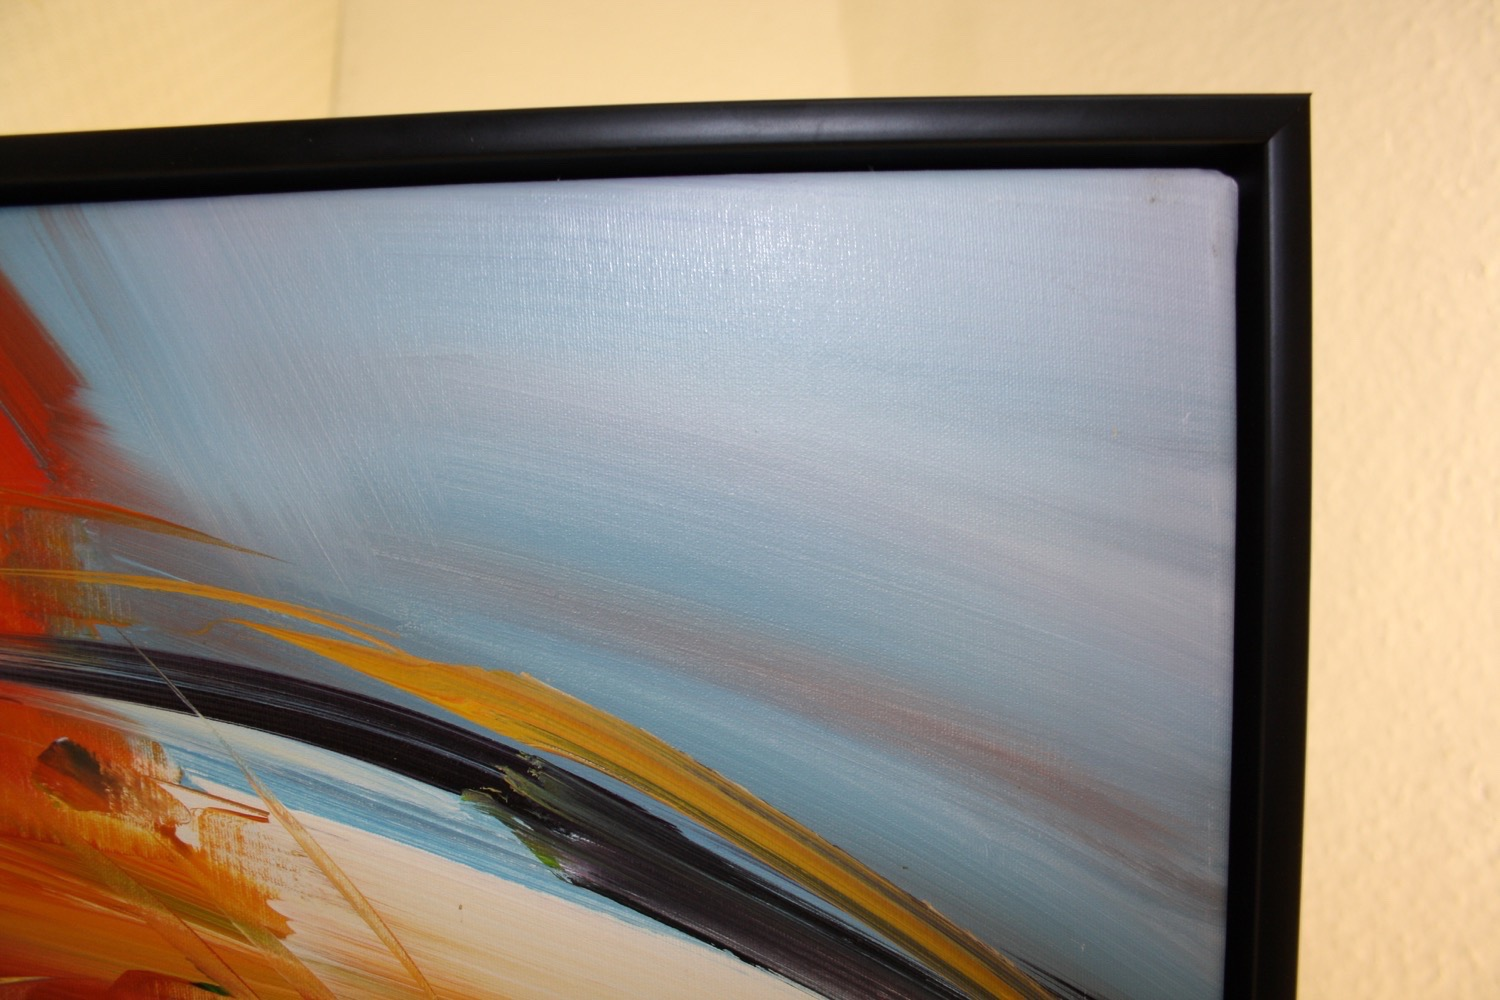 hampshire-picture-general-framing-018.JPG